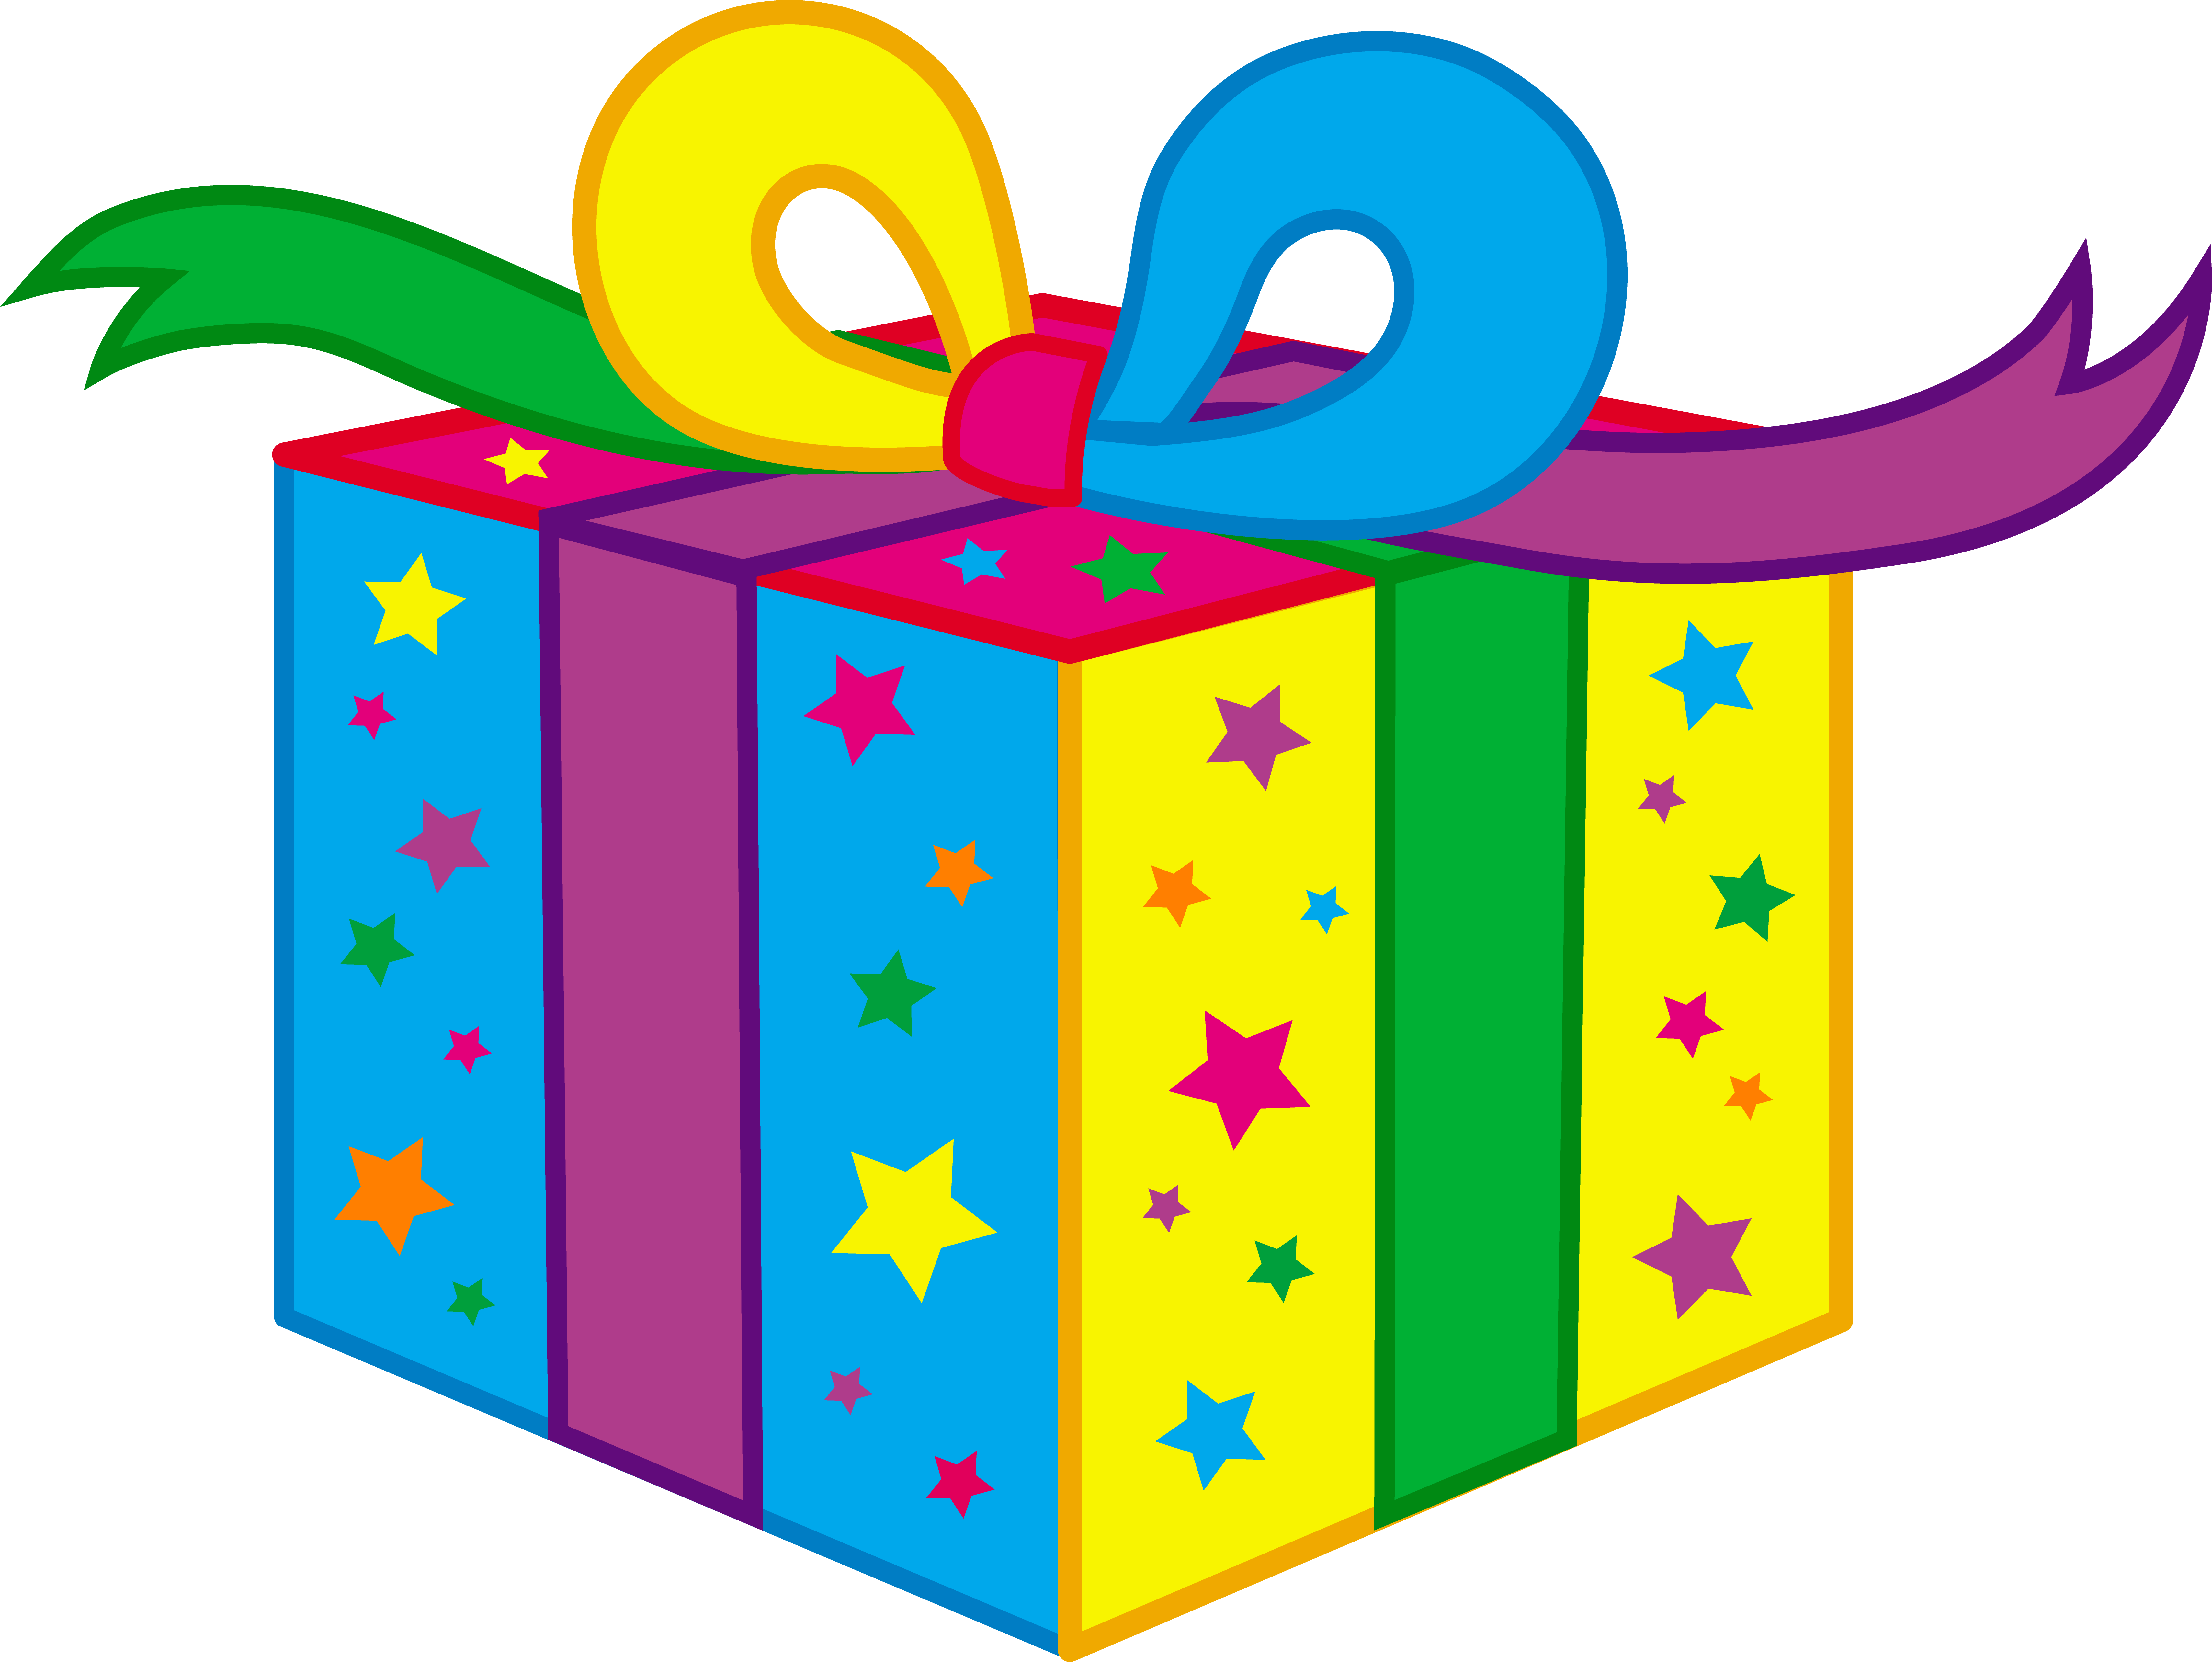 Gift . Gifts clipart birthday present graphic free library